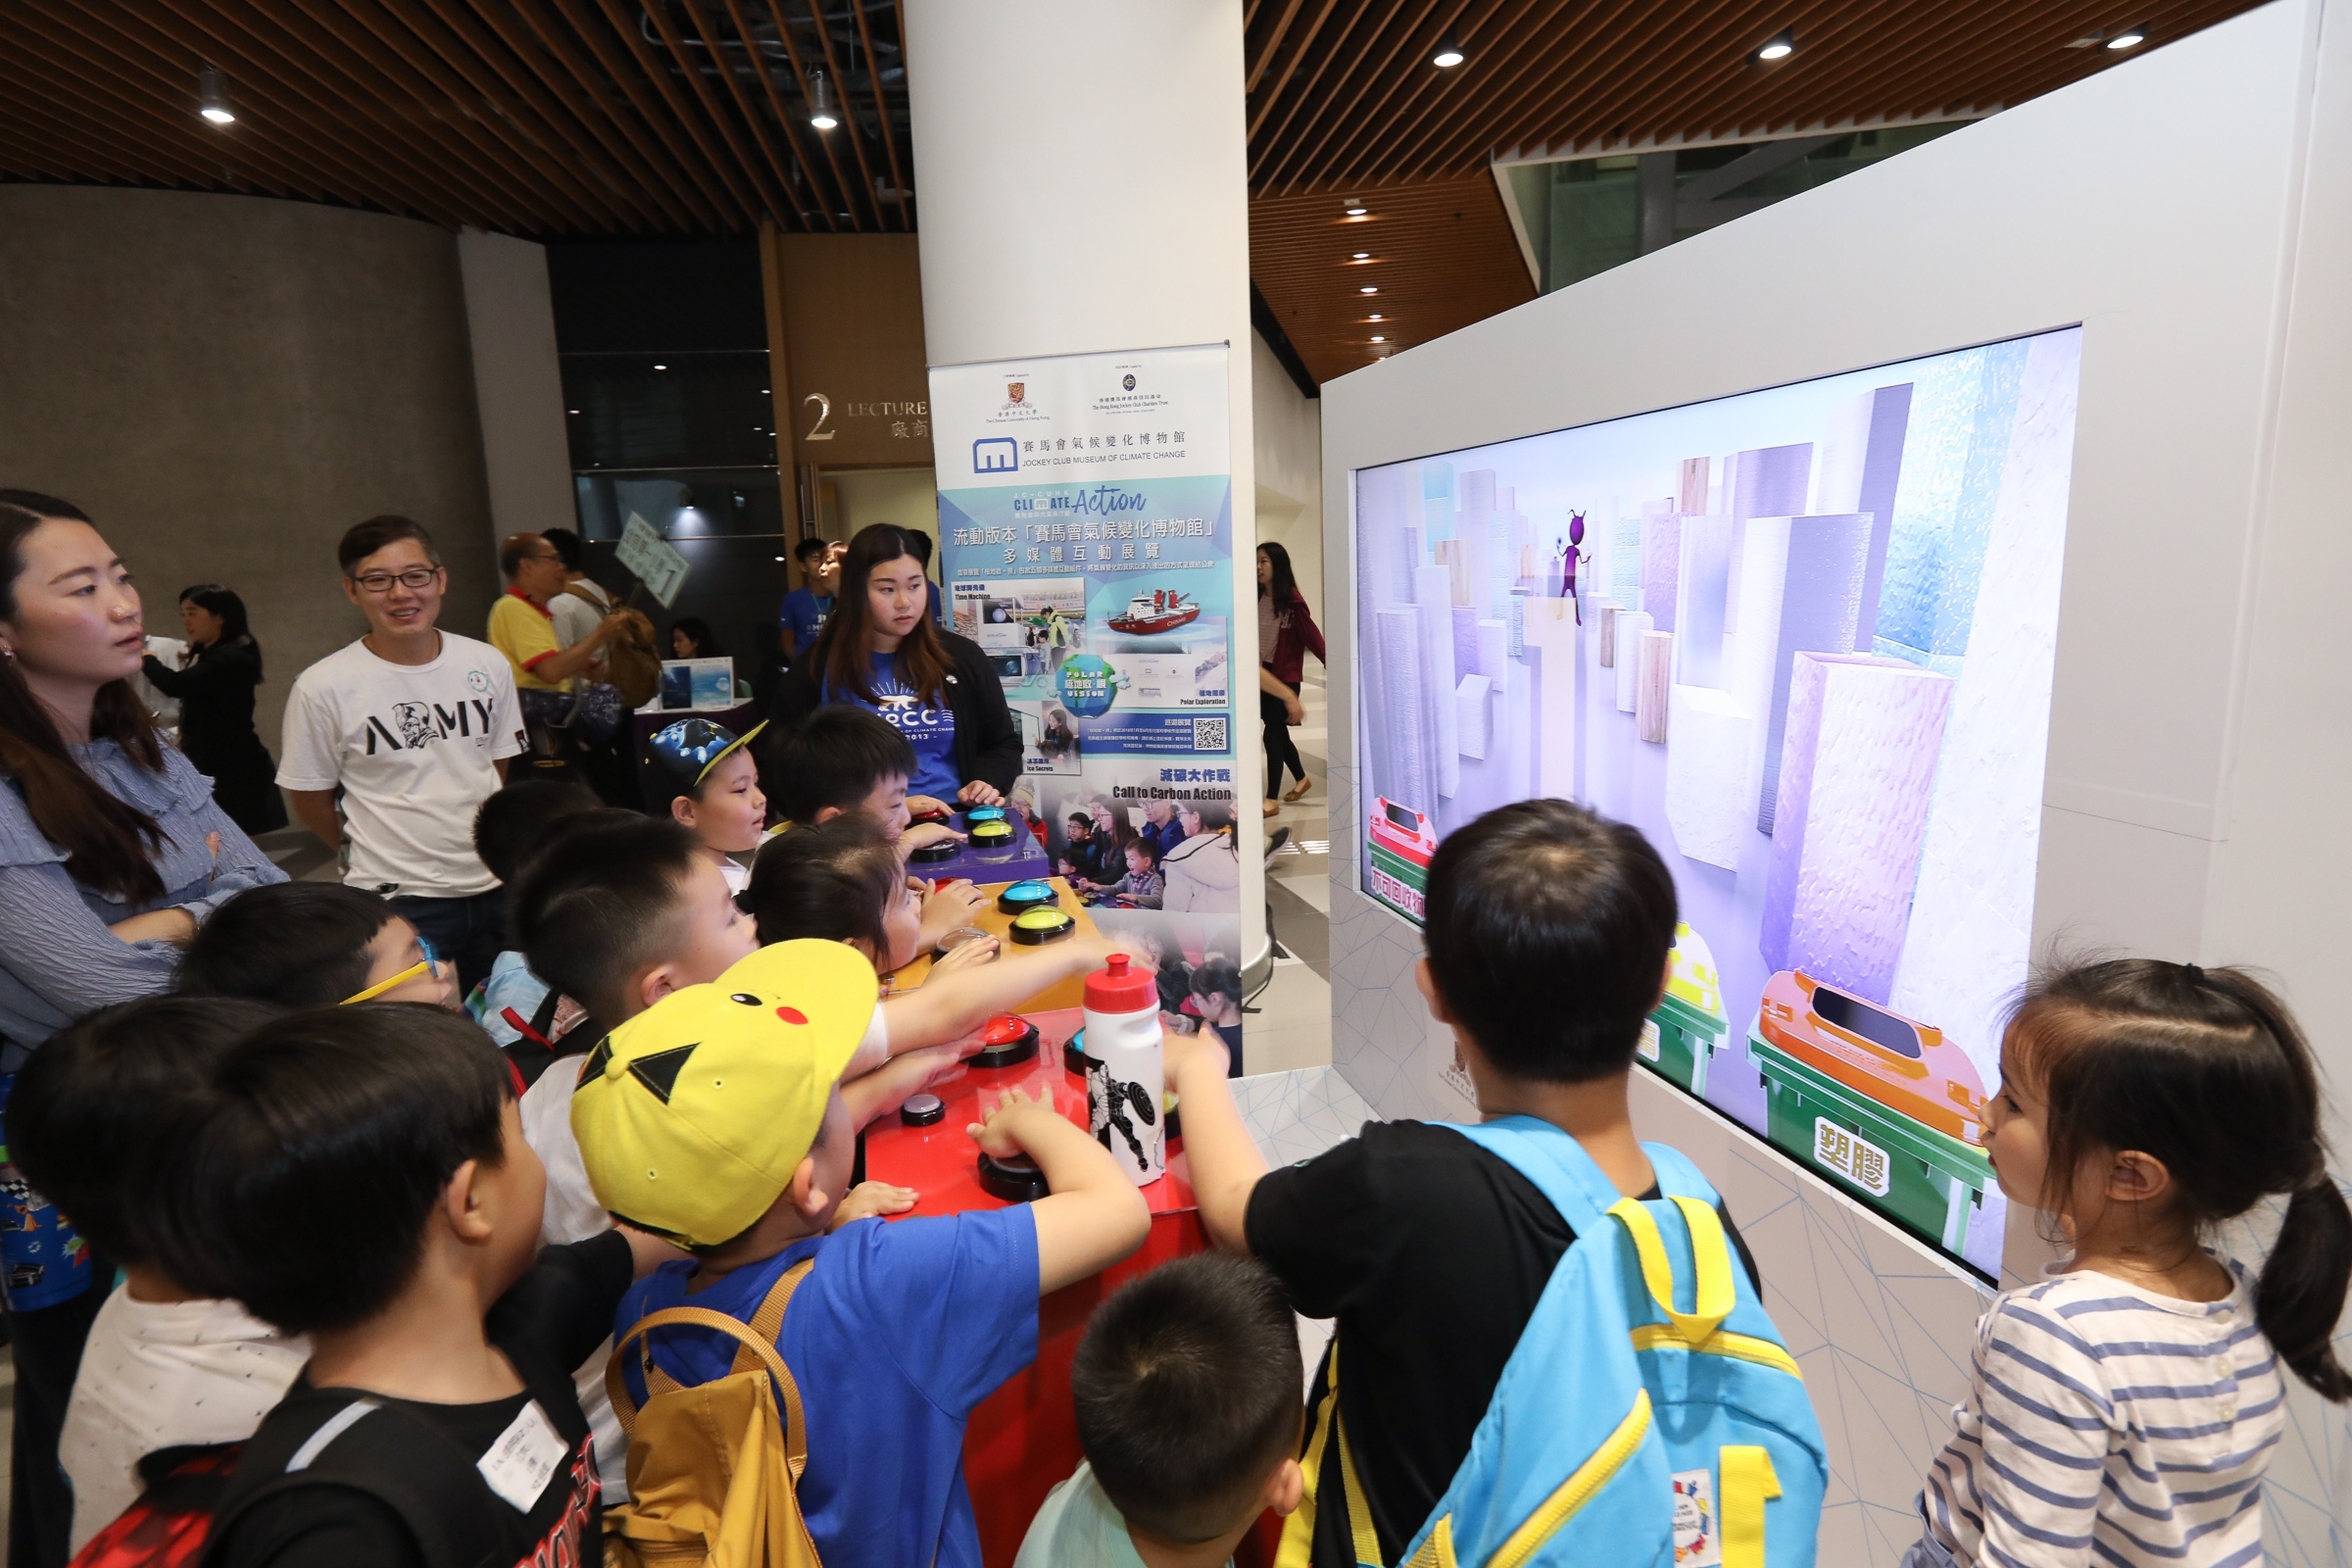 A mini-carnival with exhibits from MoCC's 'Mobile Museum' and green game booths was held before the screening.